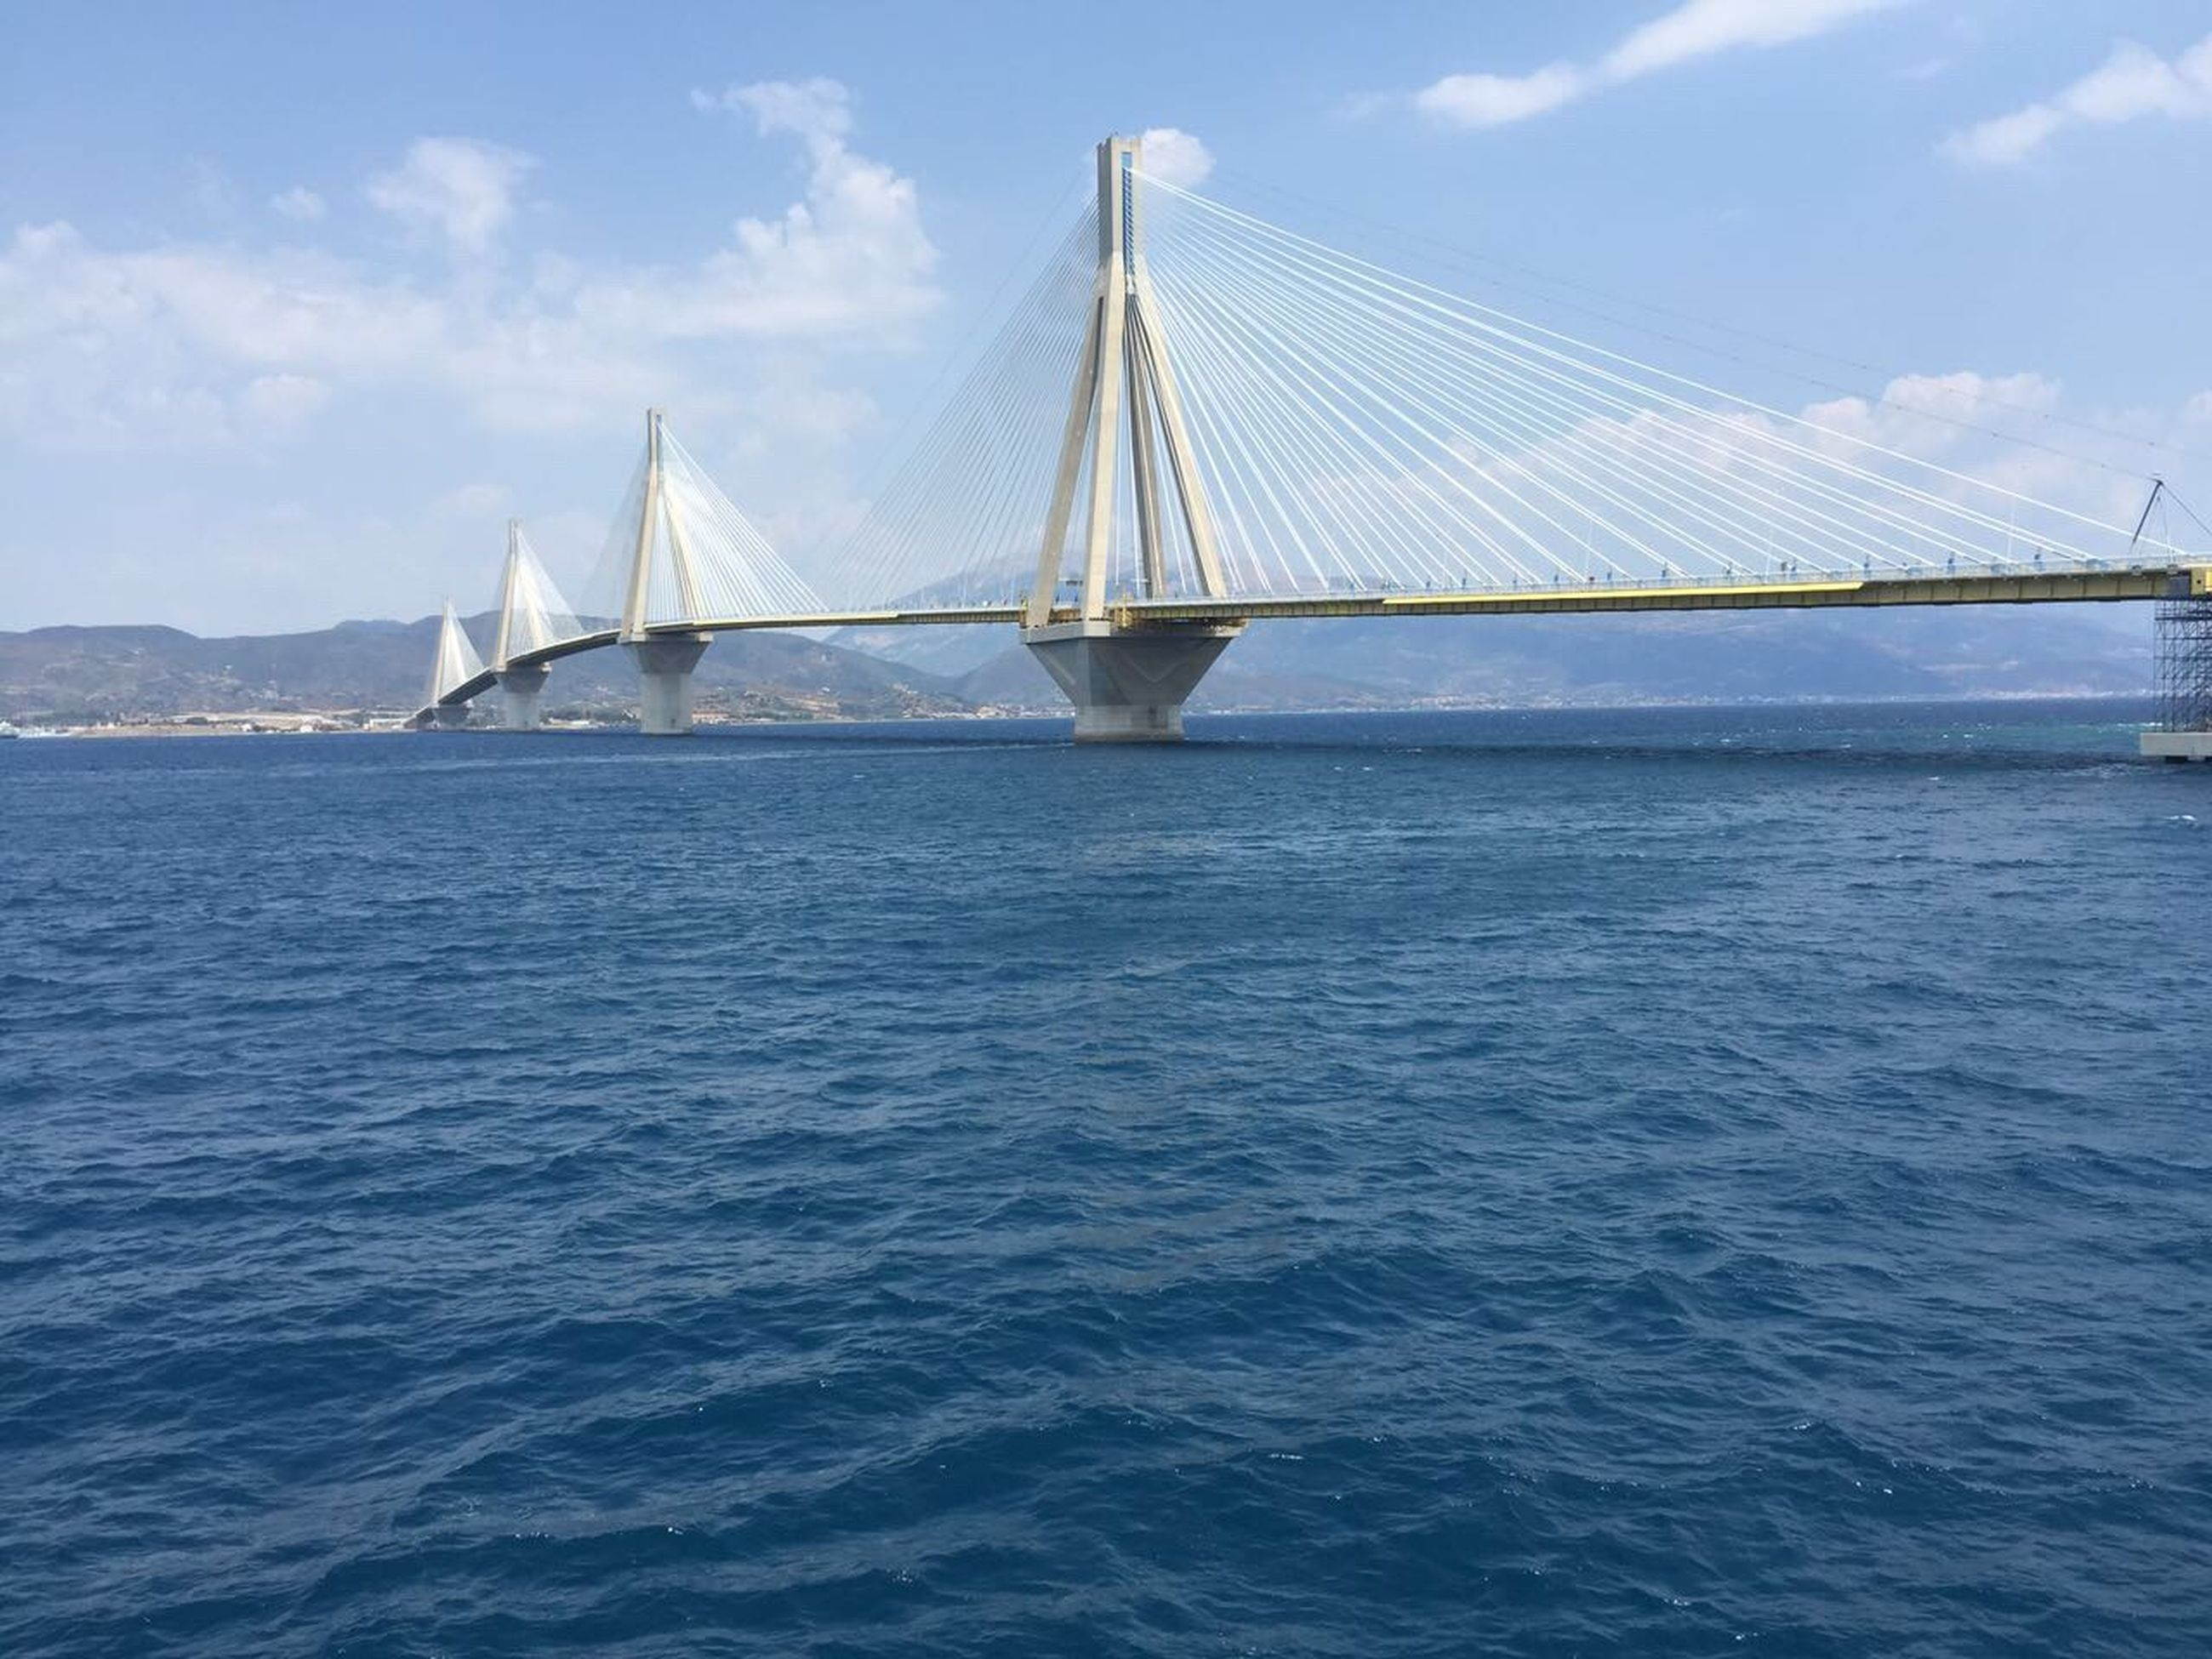 water, connection, sea, sky, built structure, architecture, bridge - man made structure, engineering, suspension bridge, cloud - sky, blue, bridge, rippled, travel destinations, cloud, tourism, day, nature, outdoors, ocean, tranquil scene, no people, tranquility, scenics, beauty in nature, cloudy